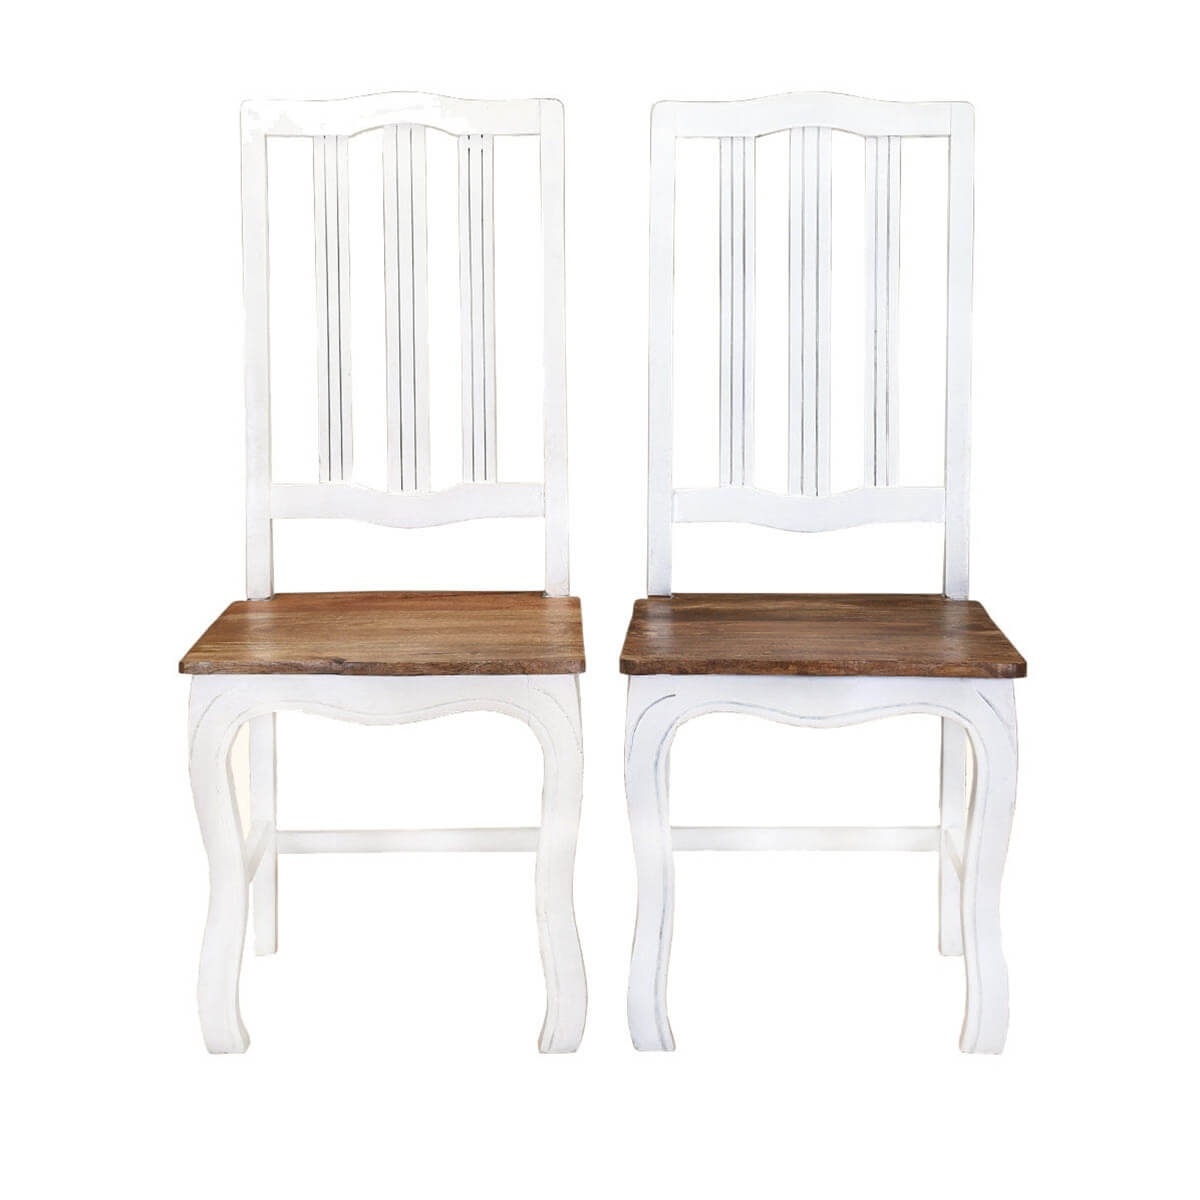 rehoboth white and natural wood cabriole dining chairs set of 2. Black Bedroom Furniture Sets. Home Design Ideas